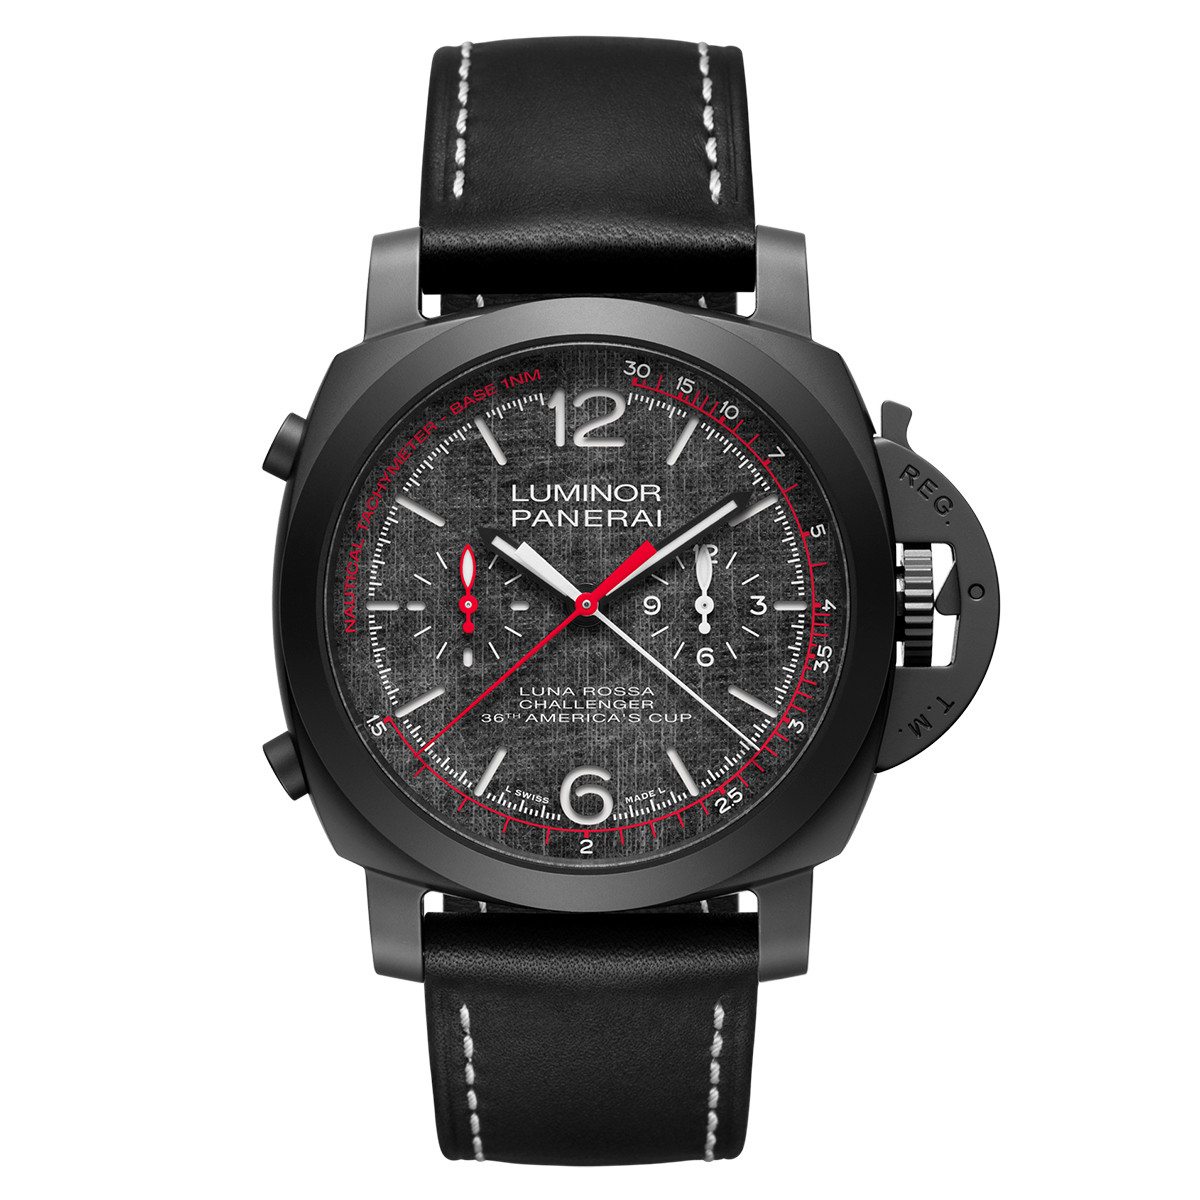 Luminor Luna Rossa Chrono Flyback Ceramic (PAM01037)